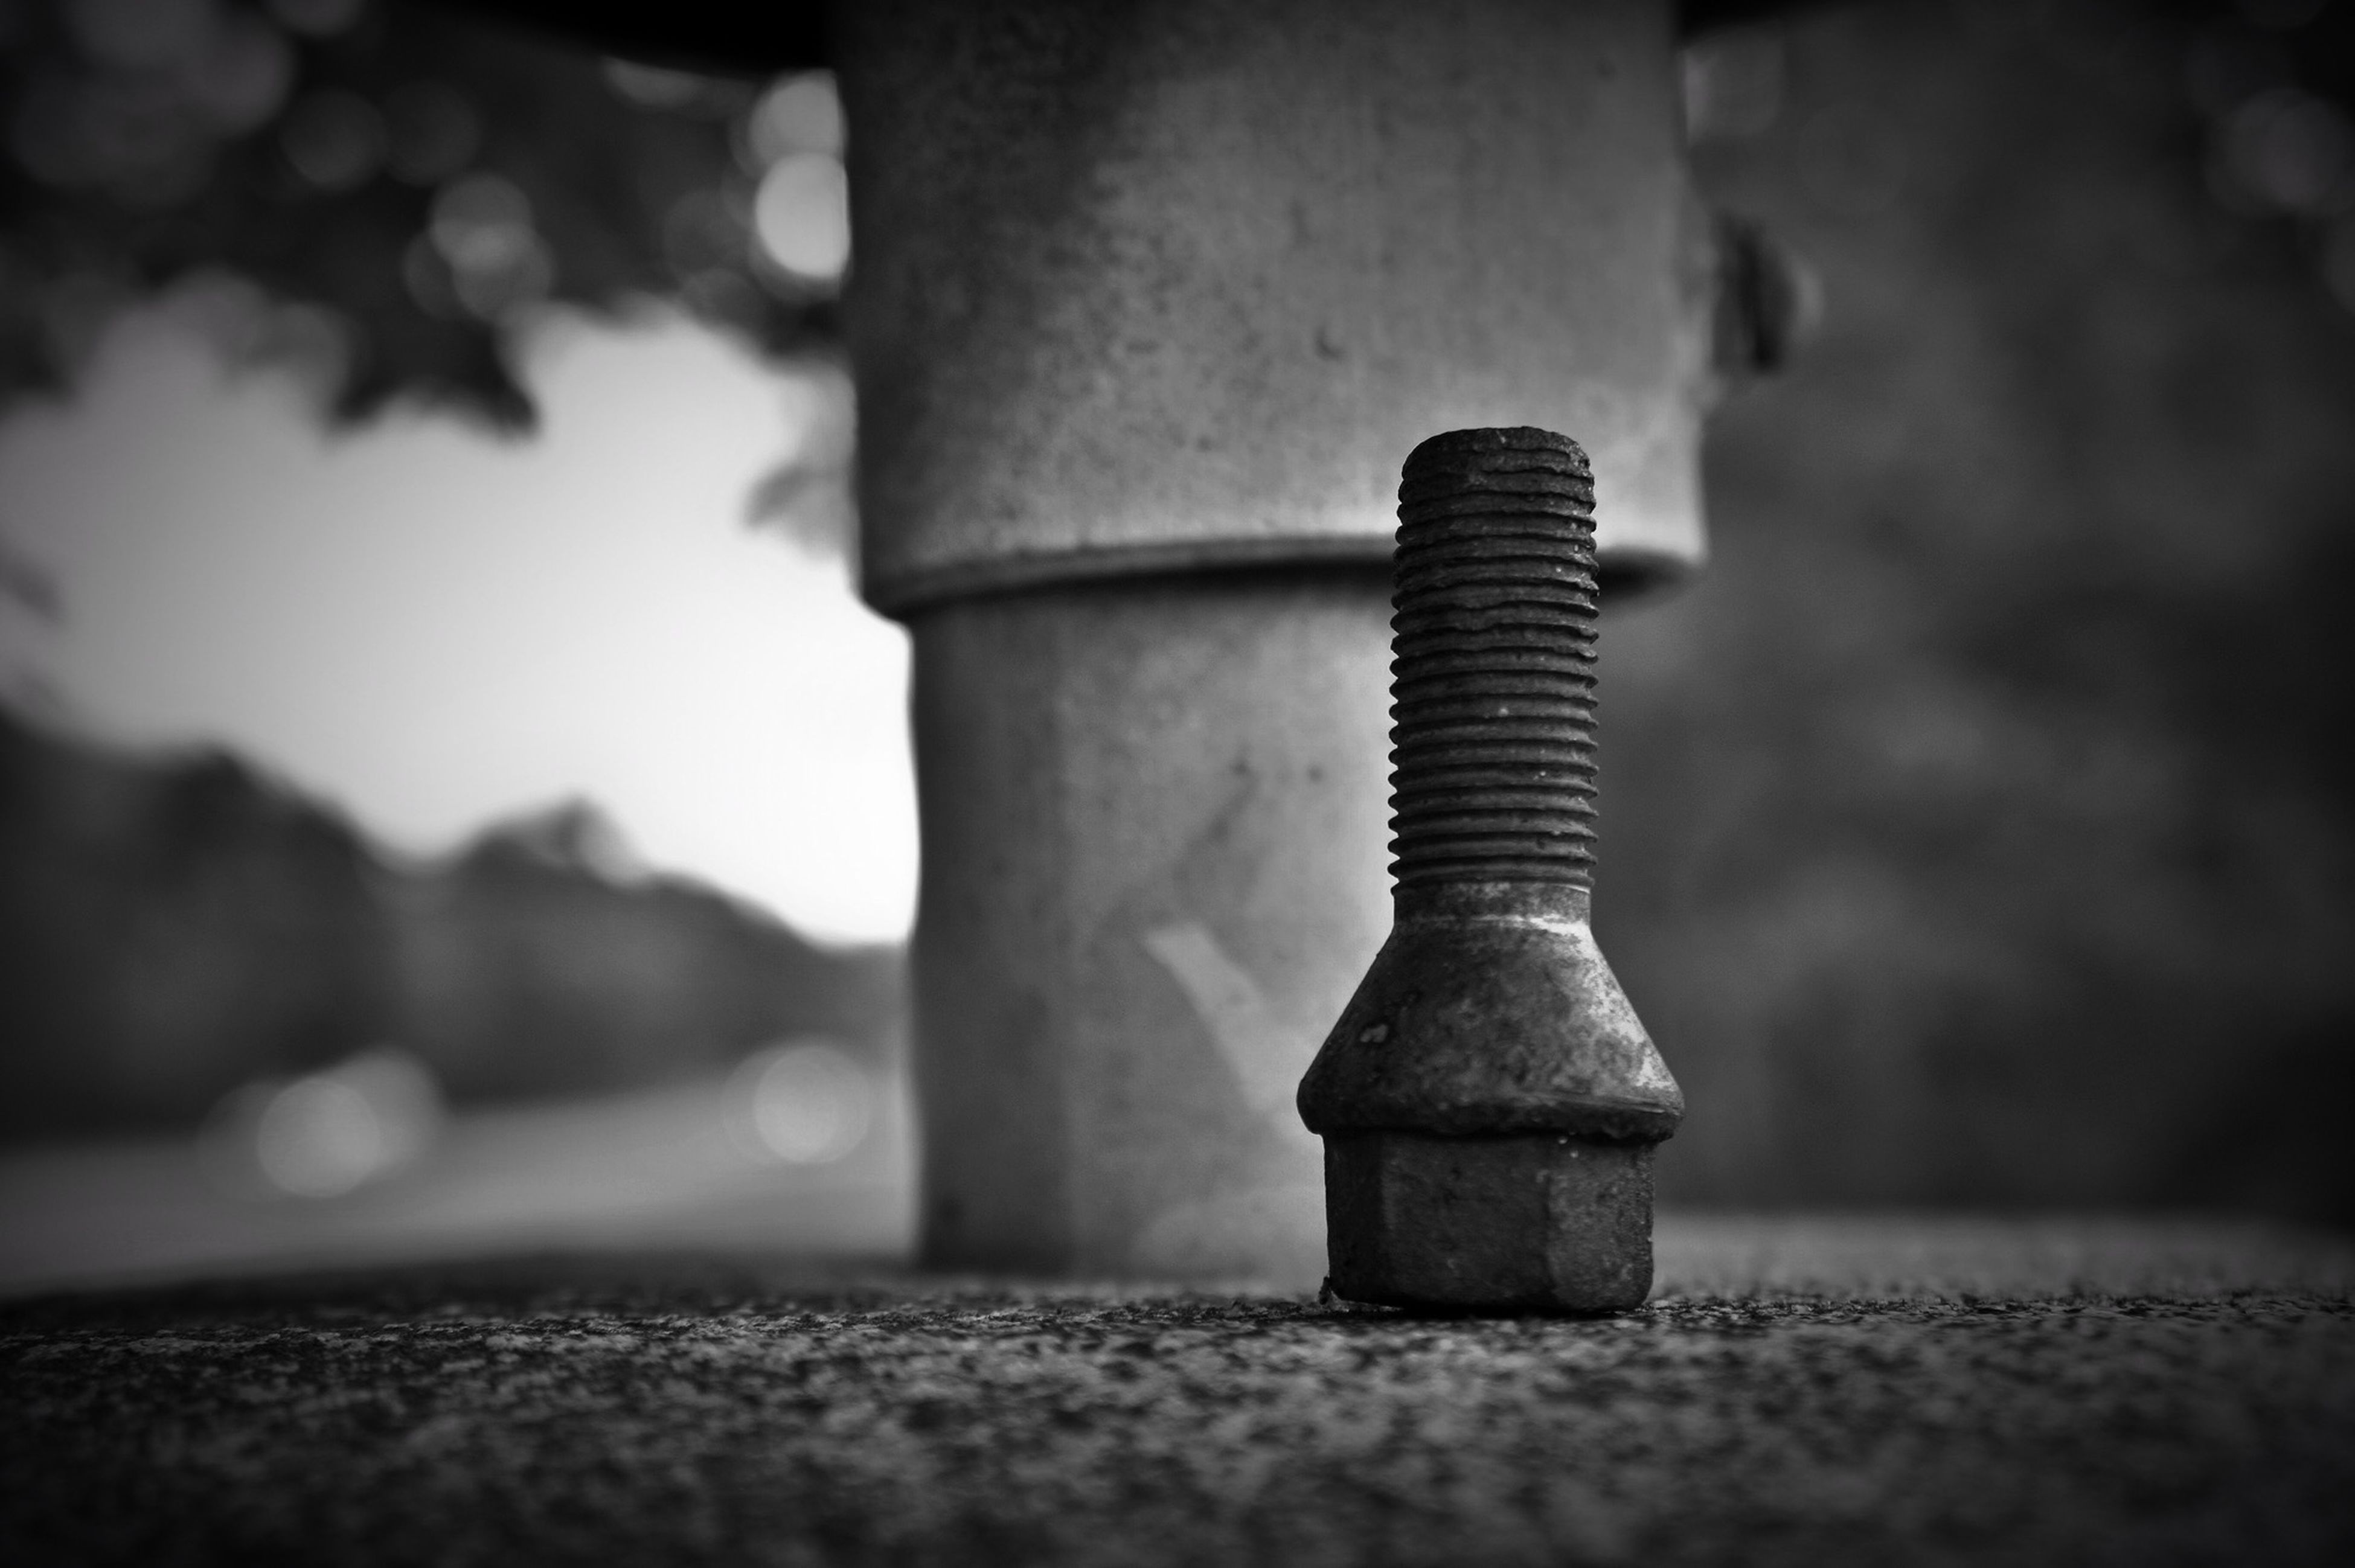 selective focus, focus on foreground, close-up, metal, surface level, still life, metallic, no people, textured, sunlight, day, outdoors, single object, shadow, wall - building feature, man made object, in a row, old, pole